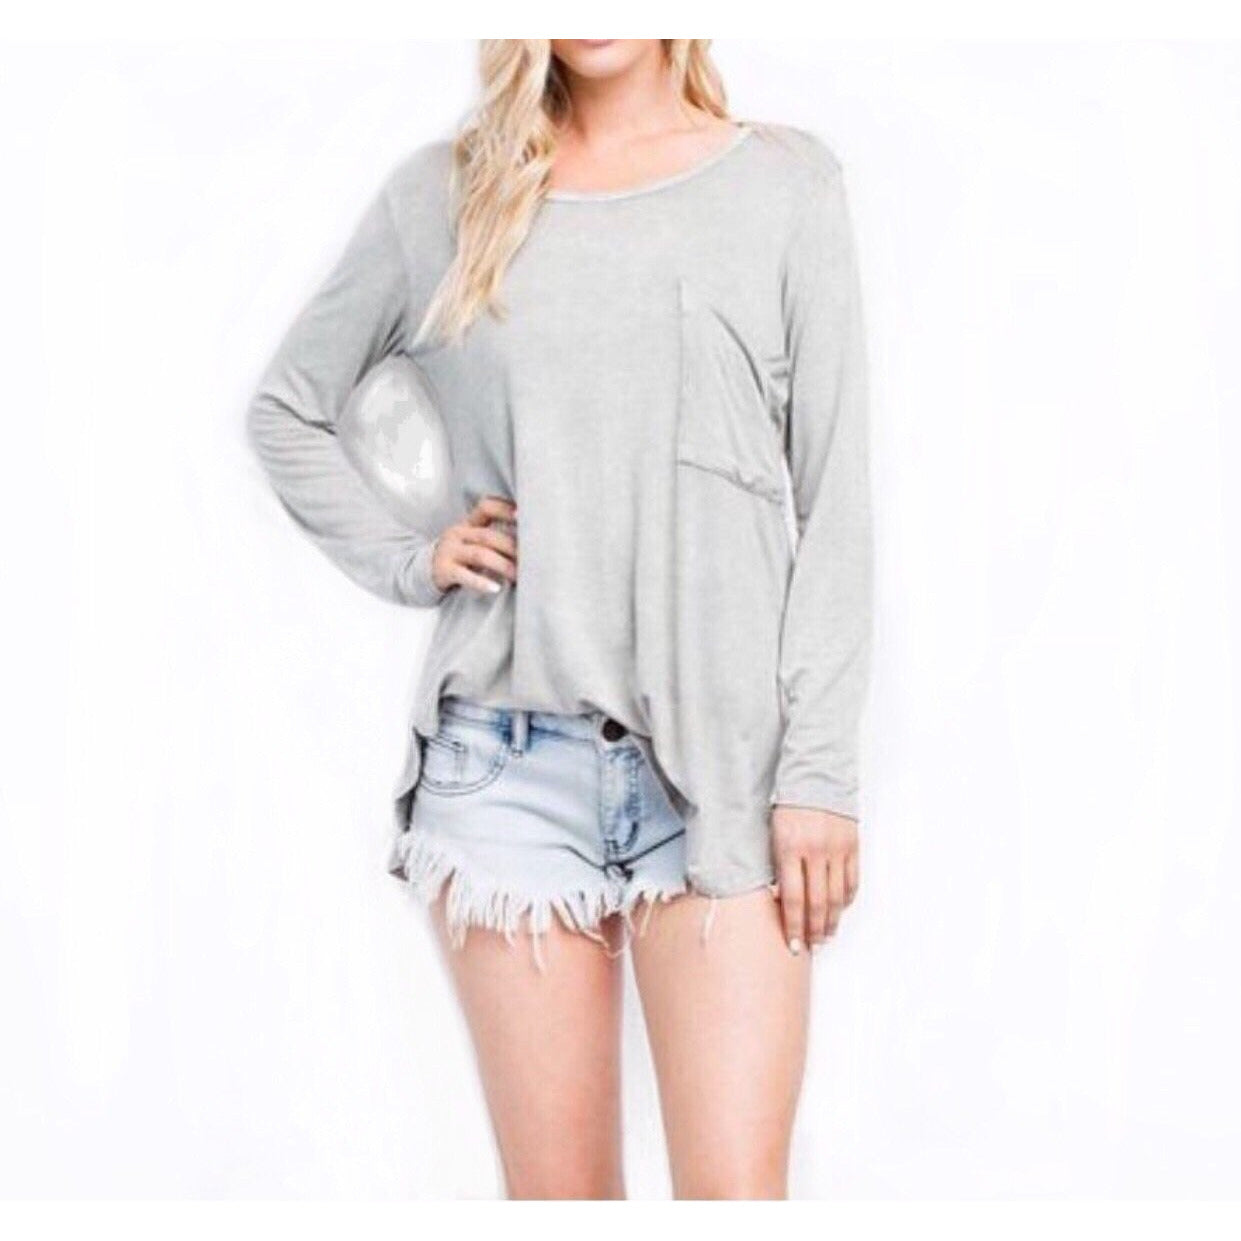 SALE ! Macie Long Sleeve T-Shirt Top - Glamco Boutique